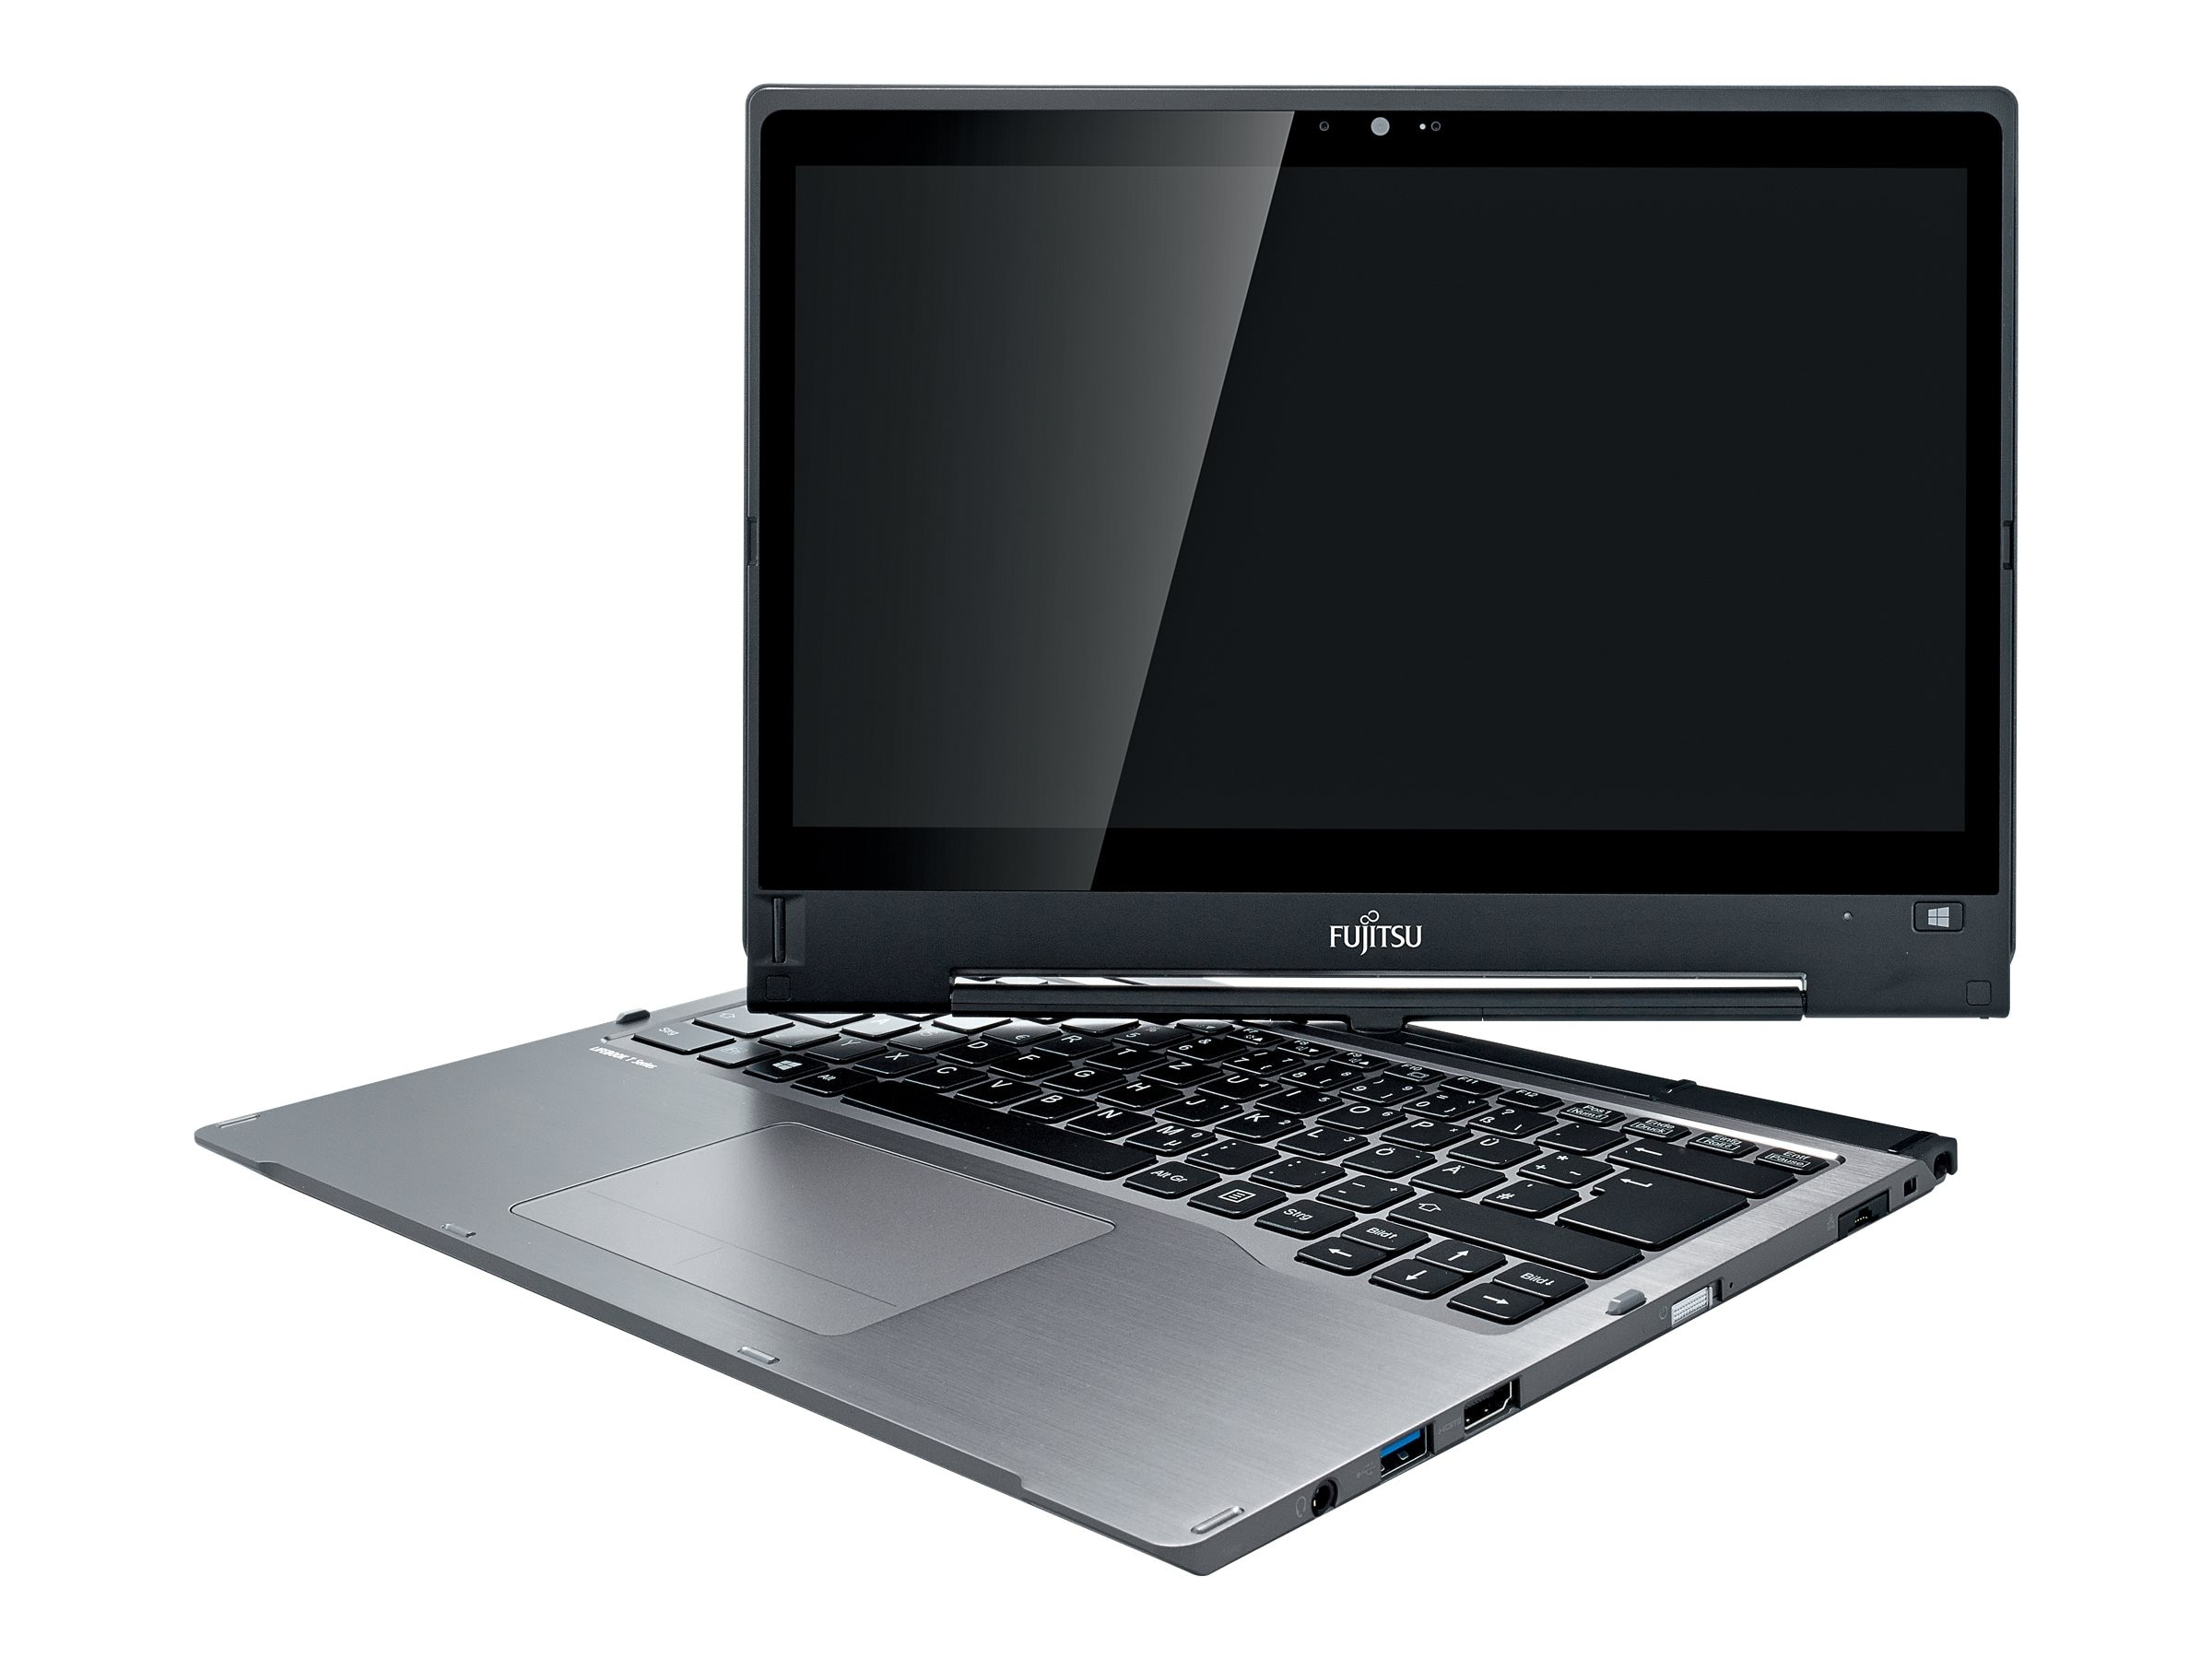 Fujitsu LifeBook T936 Core i5 2.3GHz 8GB 128GB SSD W10P64, SPFC-T936-001, 31799468, Notebooks - Convertible